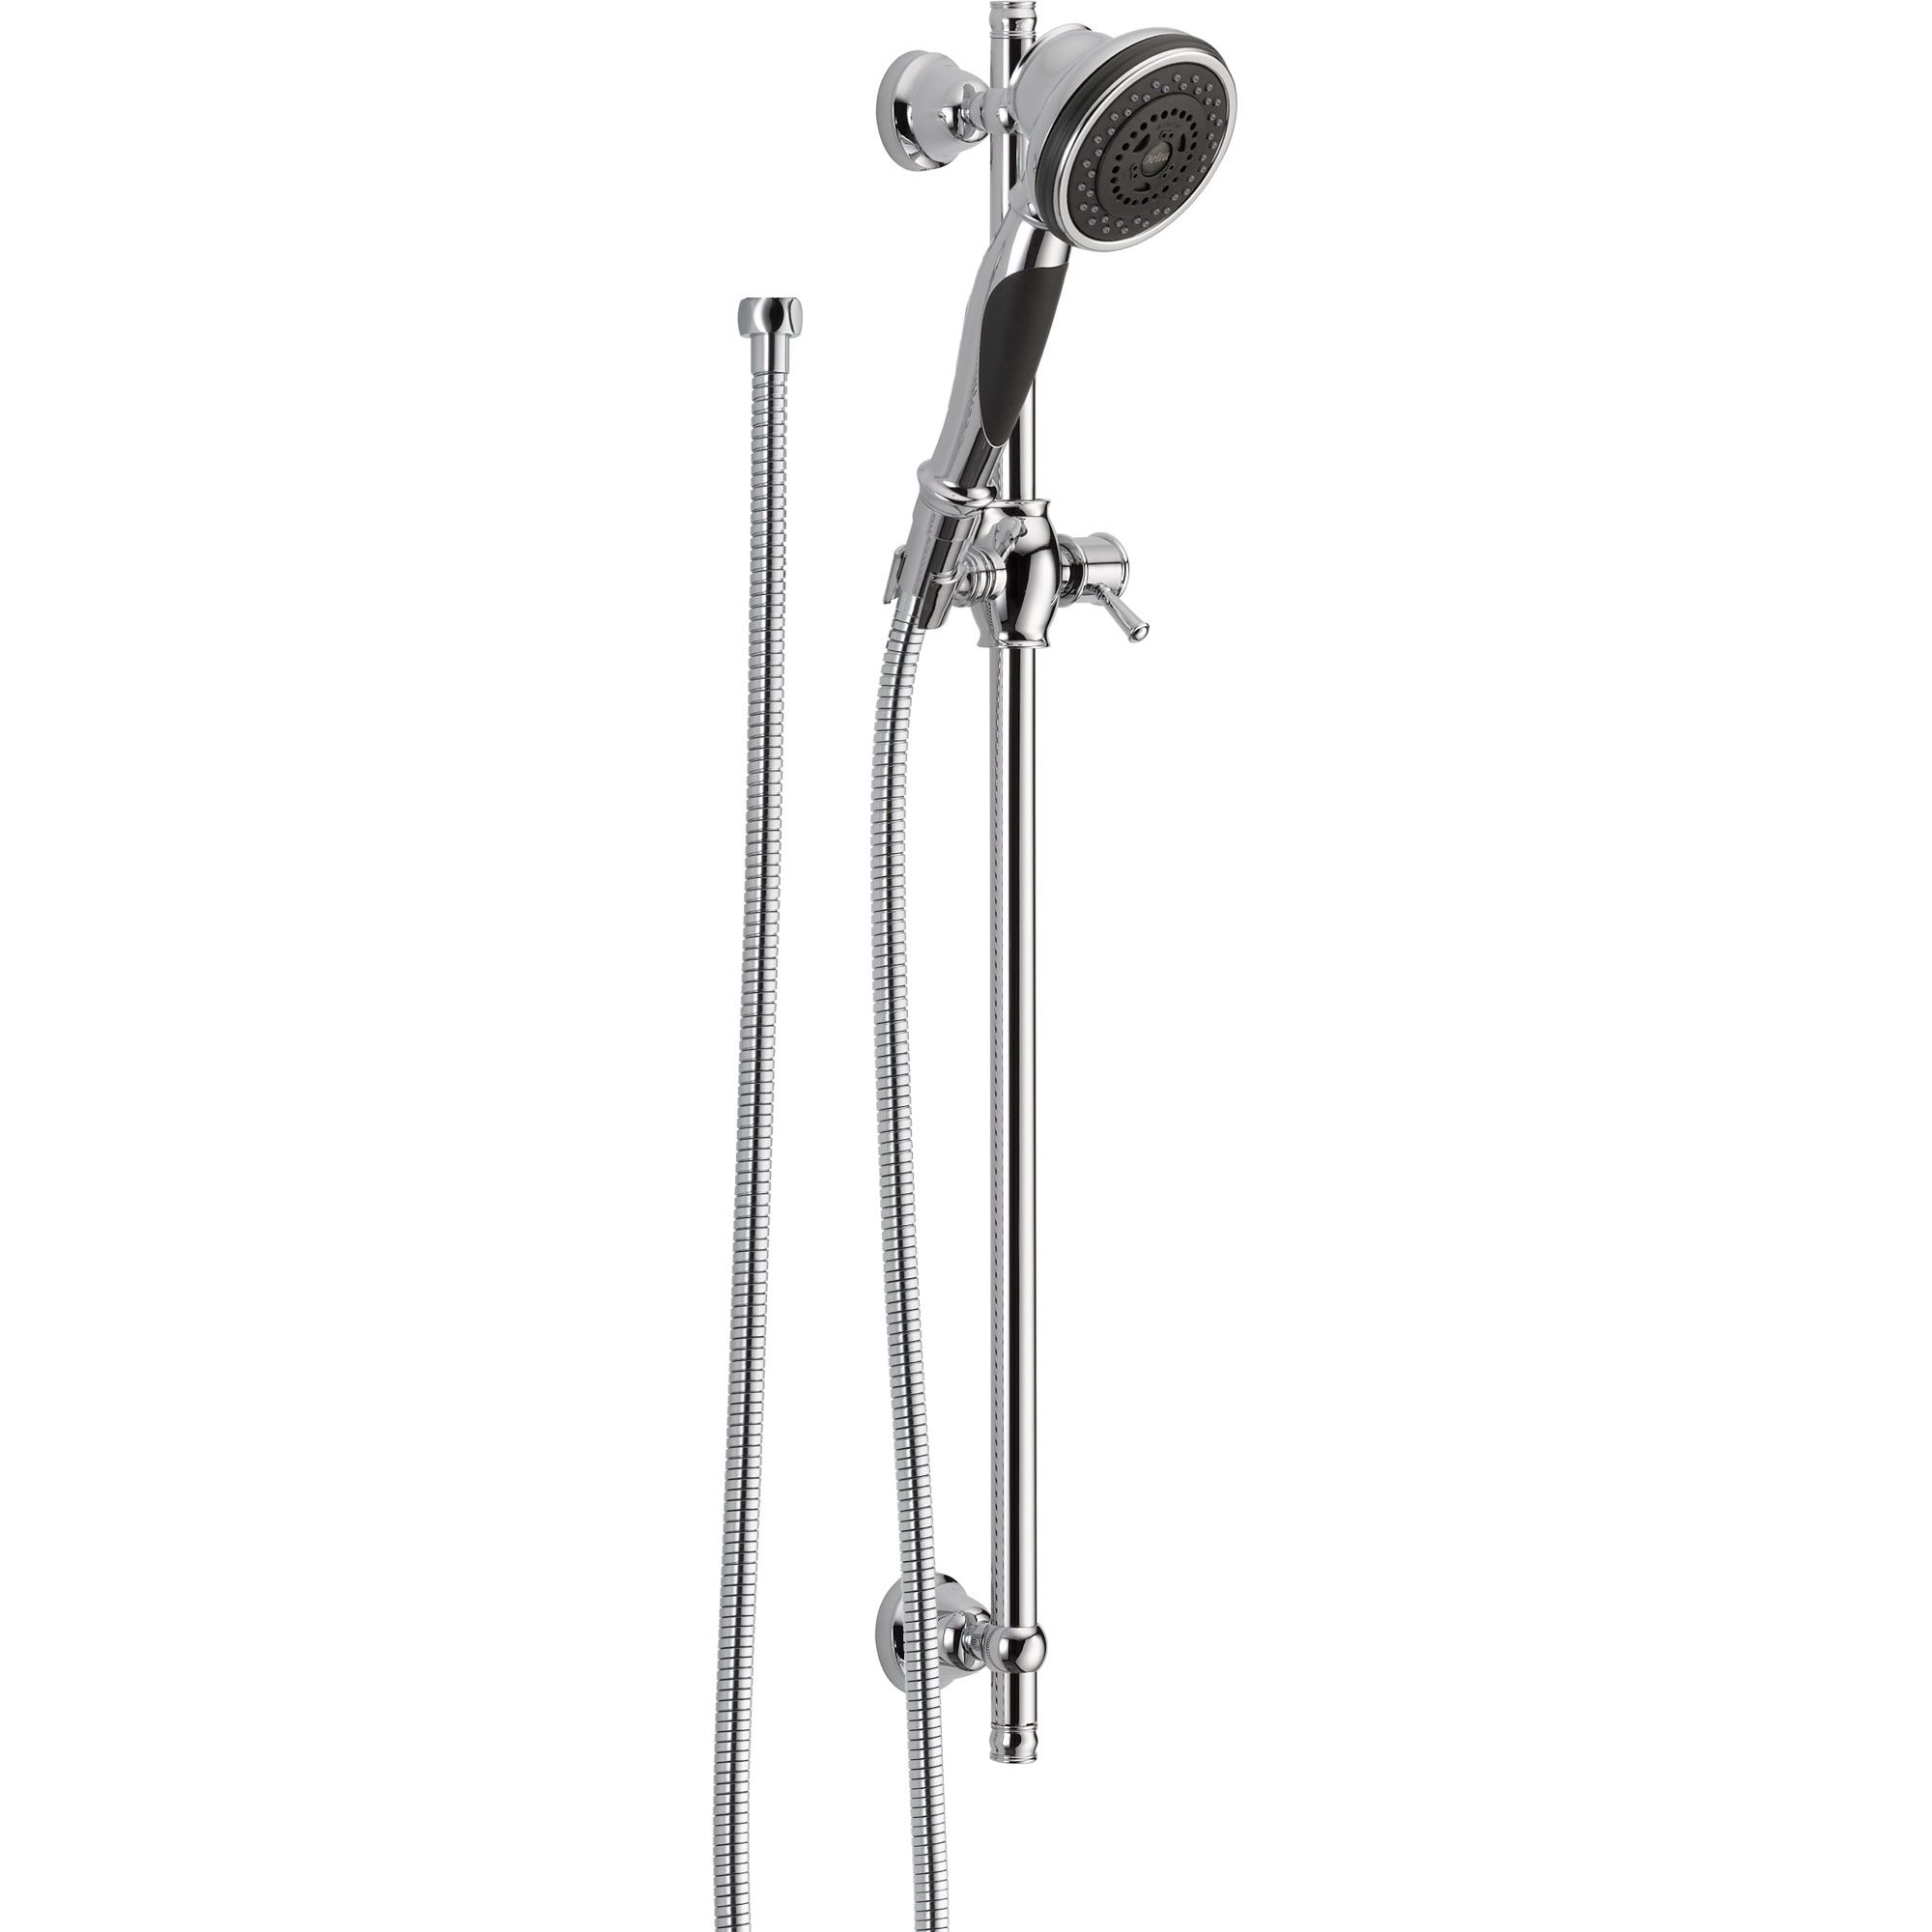 Delta 3 Spray Wall Mount Slide Bar With Personal Handheld Shower Head 527716